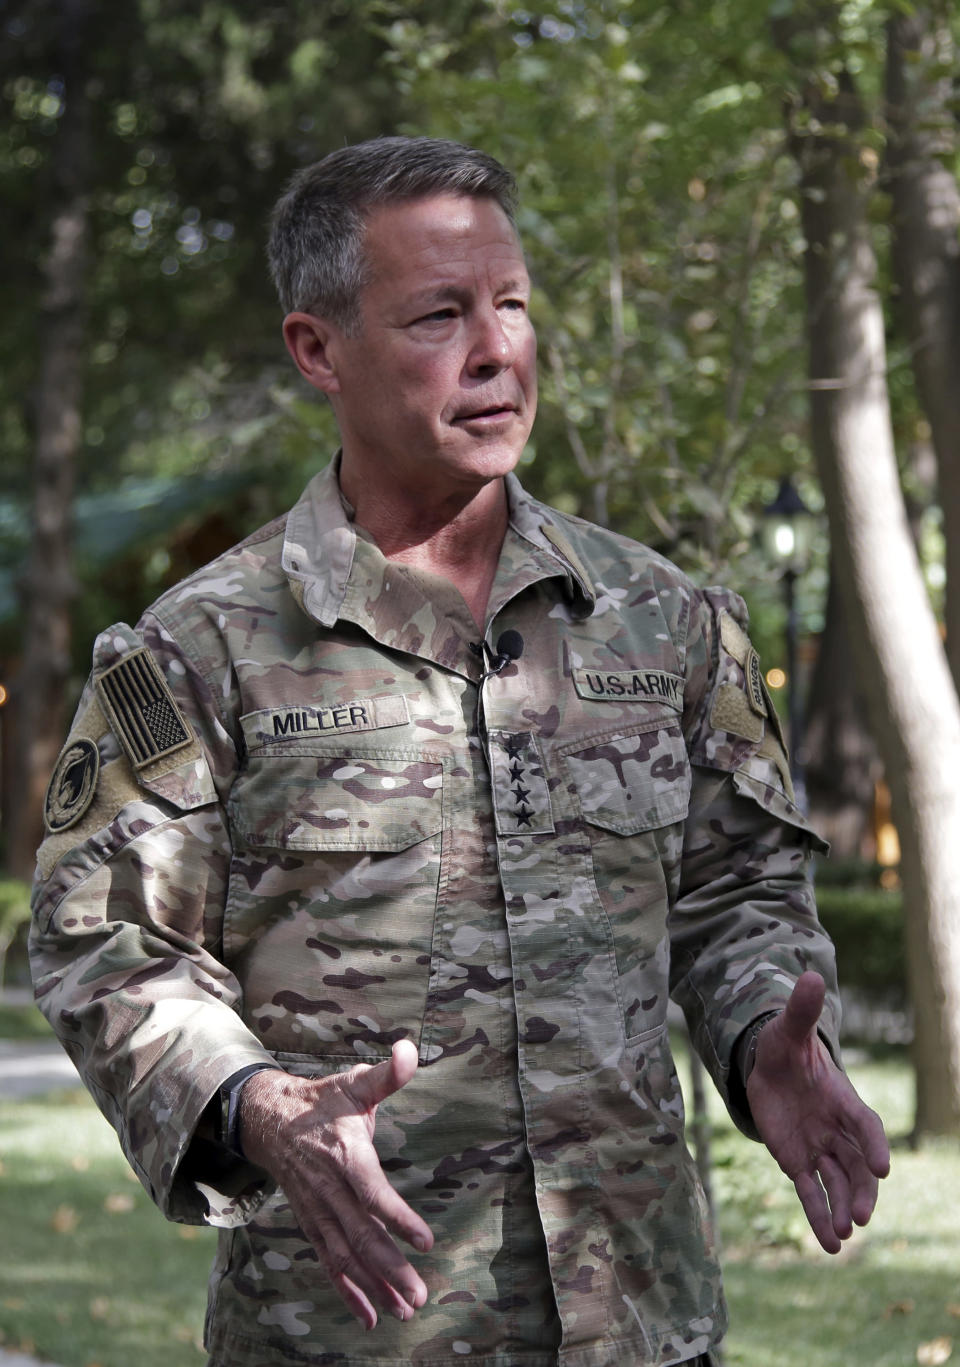 """U.S. Army Gen. Austin S. Miller, the U.S.'s top general in Afghanistan, speaks to journalists at the Resolute Support headquarters, in Kabul, Afghanistan, Tuesday, June 29, 2021. Miller on Tuesday gave a sobering assessment of the country's deteriorating security situation as America winds down its so-called """"forever war."""" He pointed to the rapid loss of districts around the country — several with significant strategic value — and said he fears the militias deployed to help the security forces could lead the country into civil war. (AP Photo/Ahmad Seir)"""